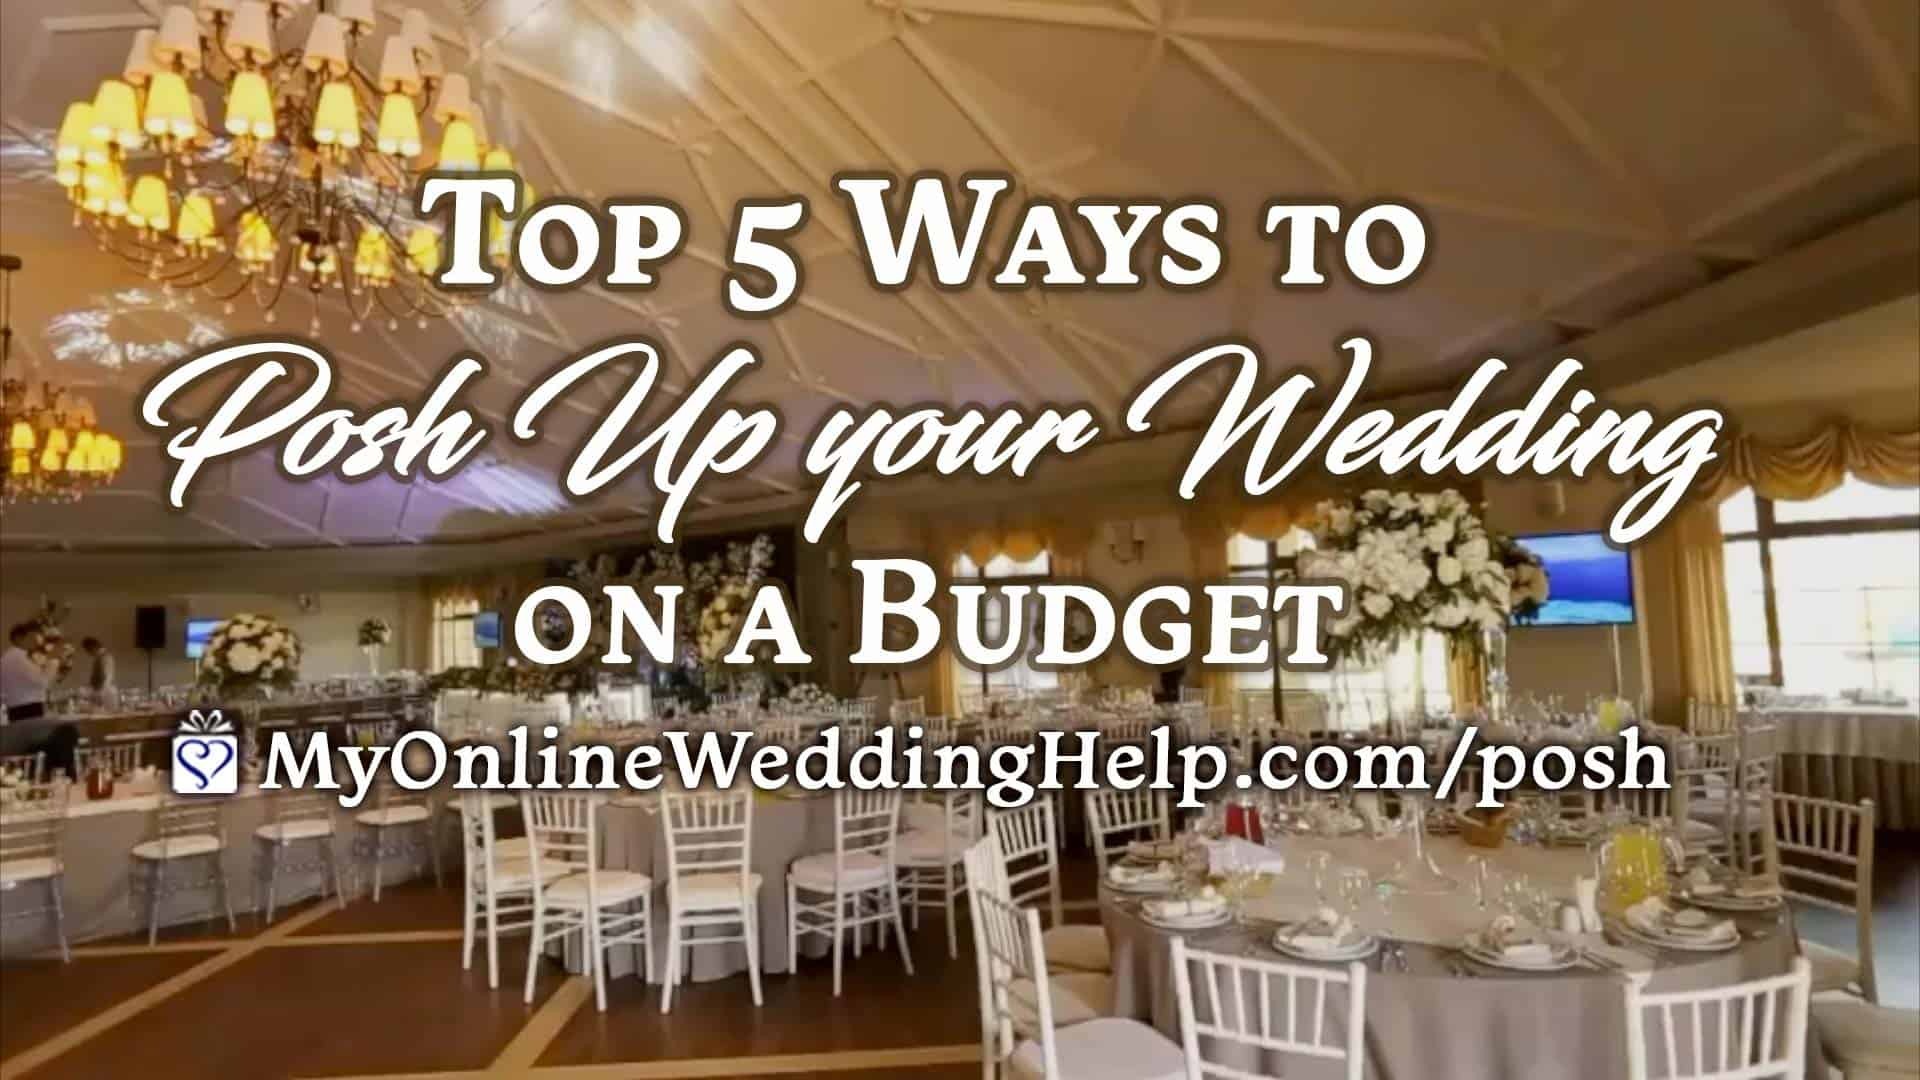 Top 5 Ways to Posh Up Your Wedding on a Budget - My Online Wedding ...